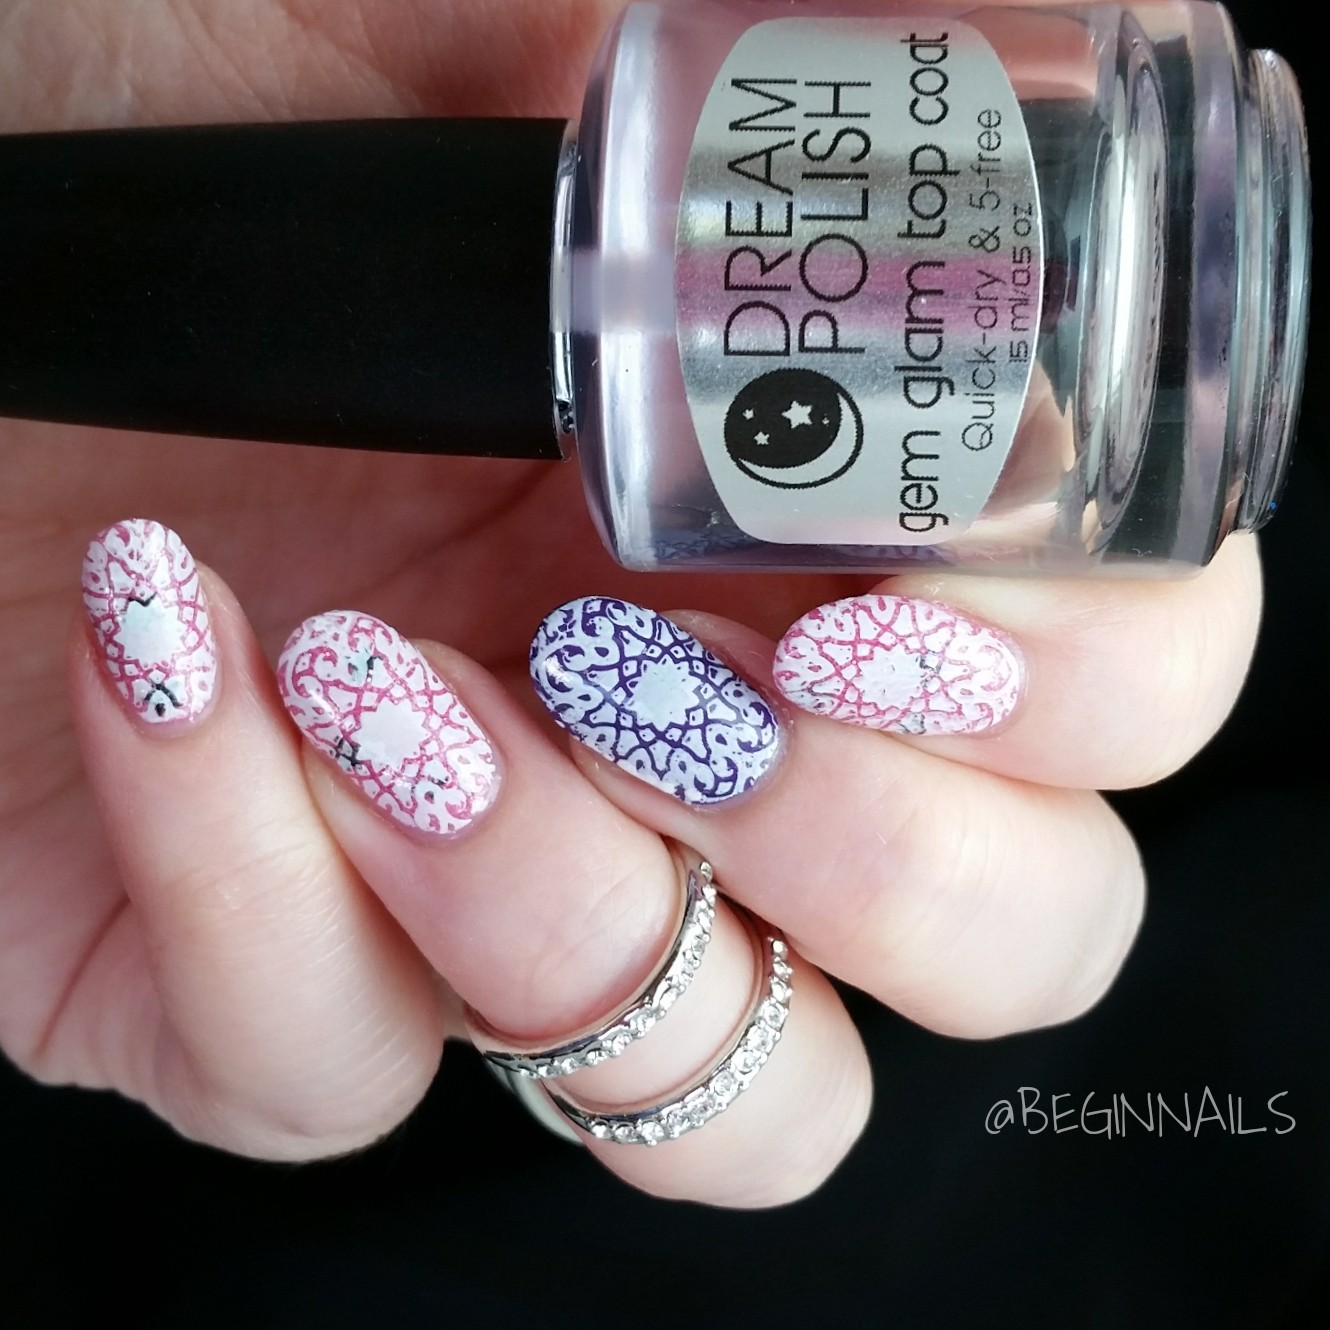 Let\'s Begin Nails: It Girl IG103 Stamping Plate Review Part 2